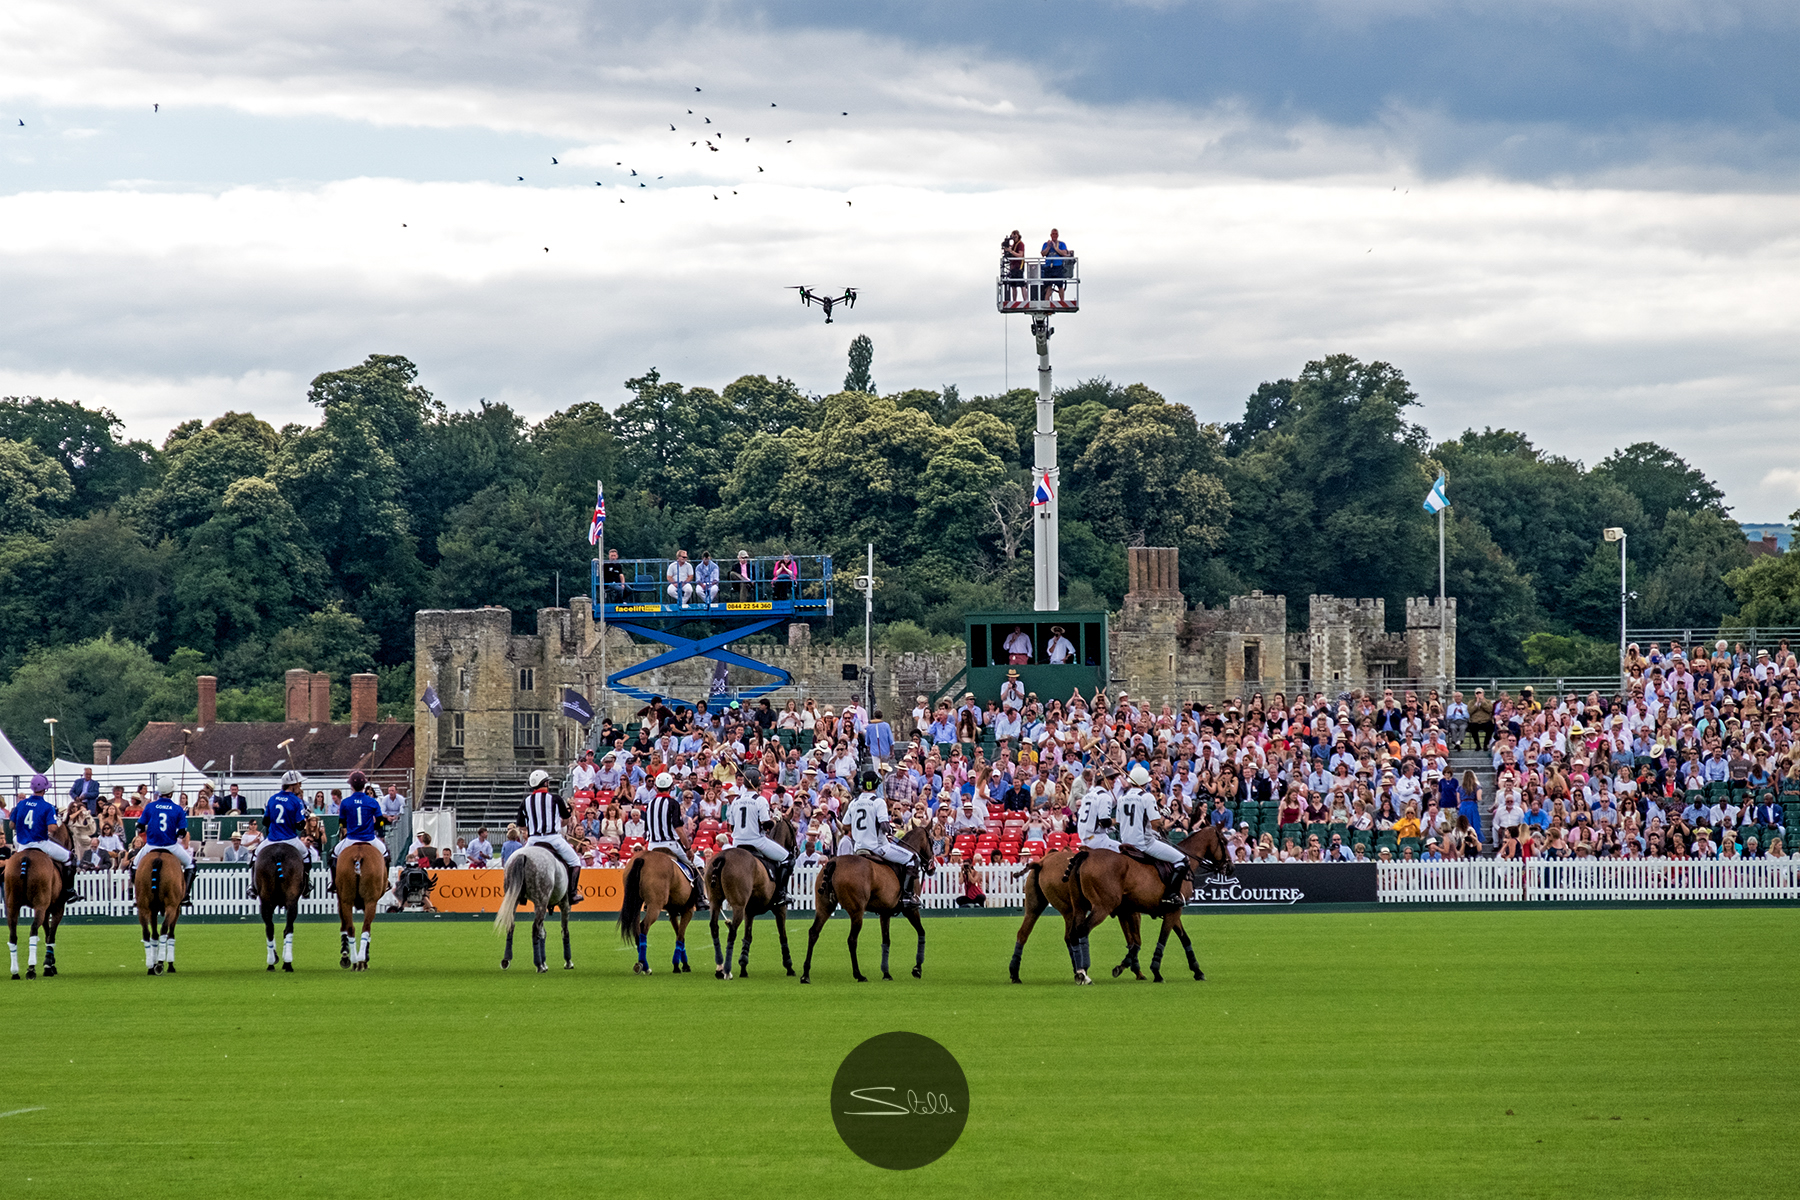 Stella Scordellis Jaeger-LeCoultre Gold Cup 2016 17 Watermarked.jpg